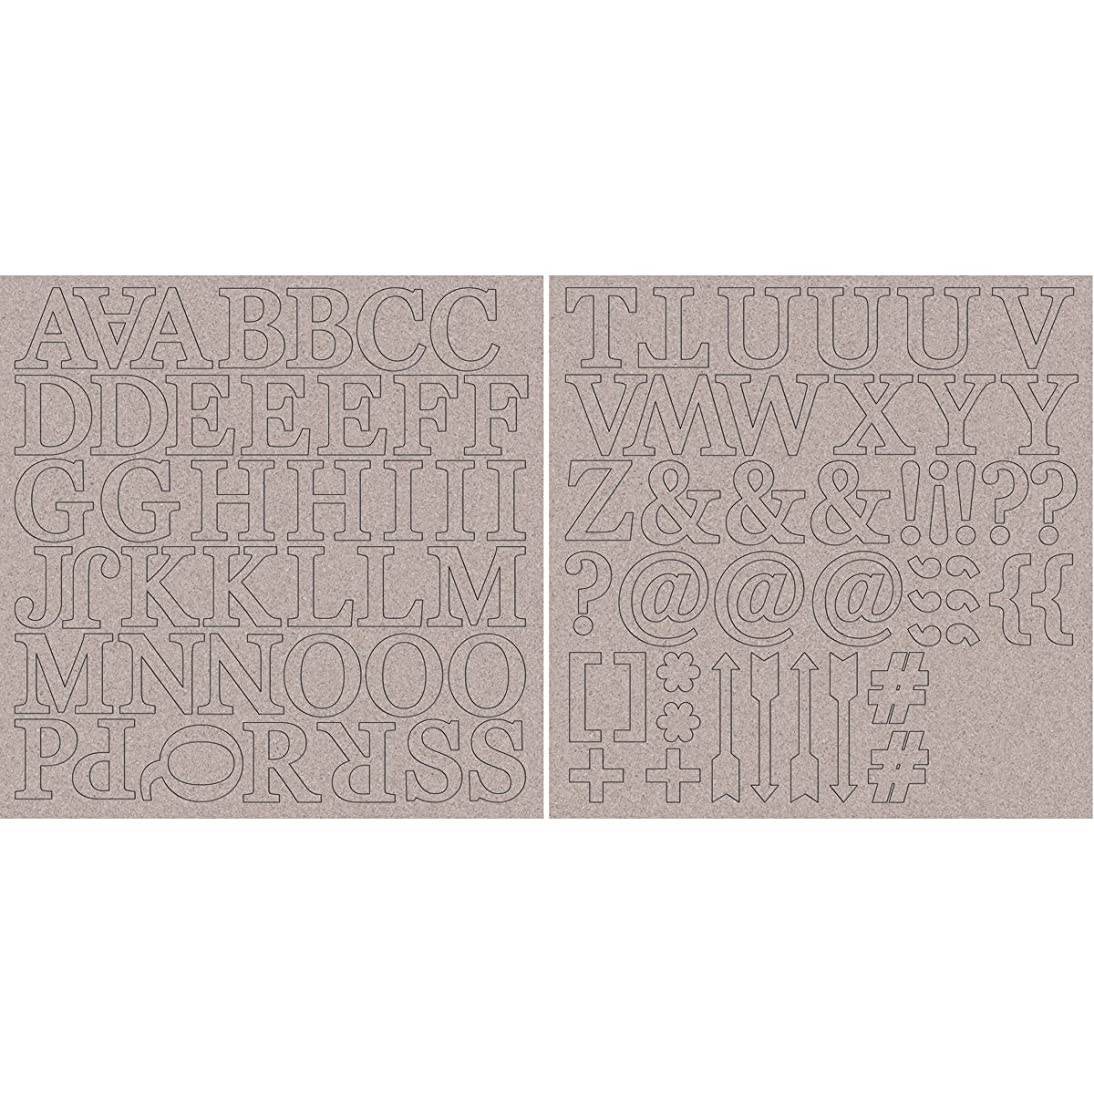 Kaisercraft Chipboard Alphabet Sheets, 12 x 12-Inch, 1.75-Inch Uppercase Letters and Symbols, 2-Pack